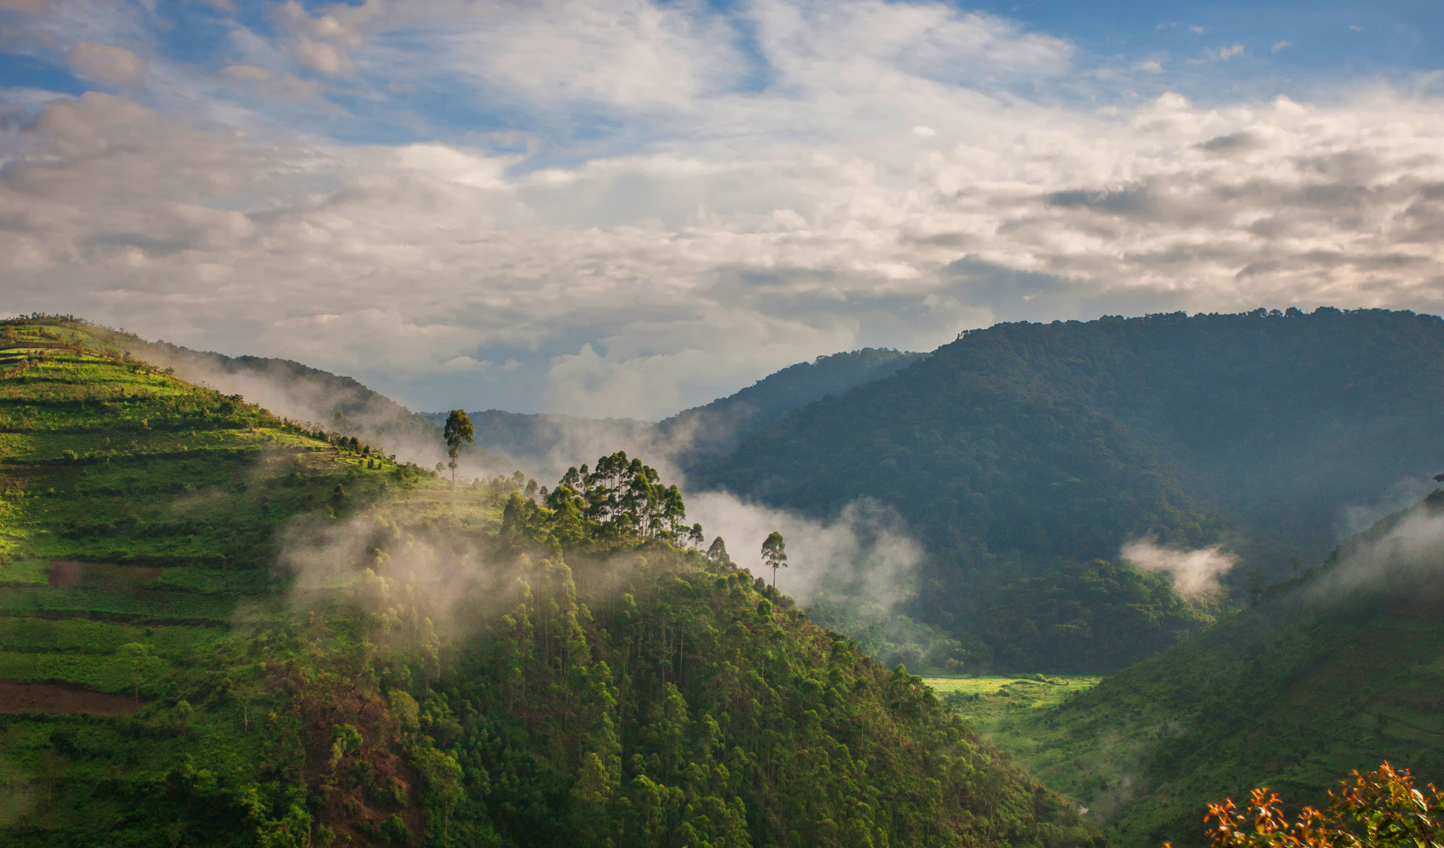 Hop across the border into Uganda and the Bwindi Impenetrable Forest